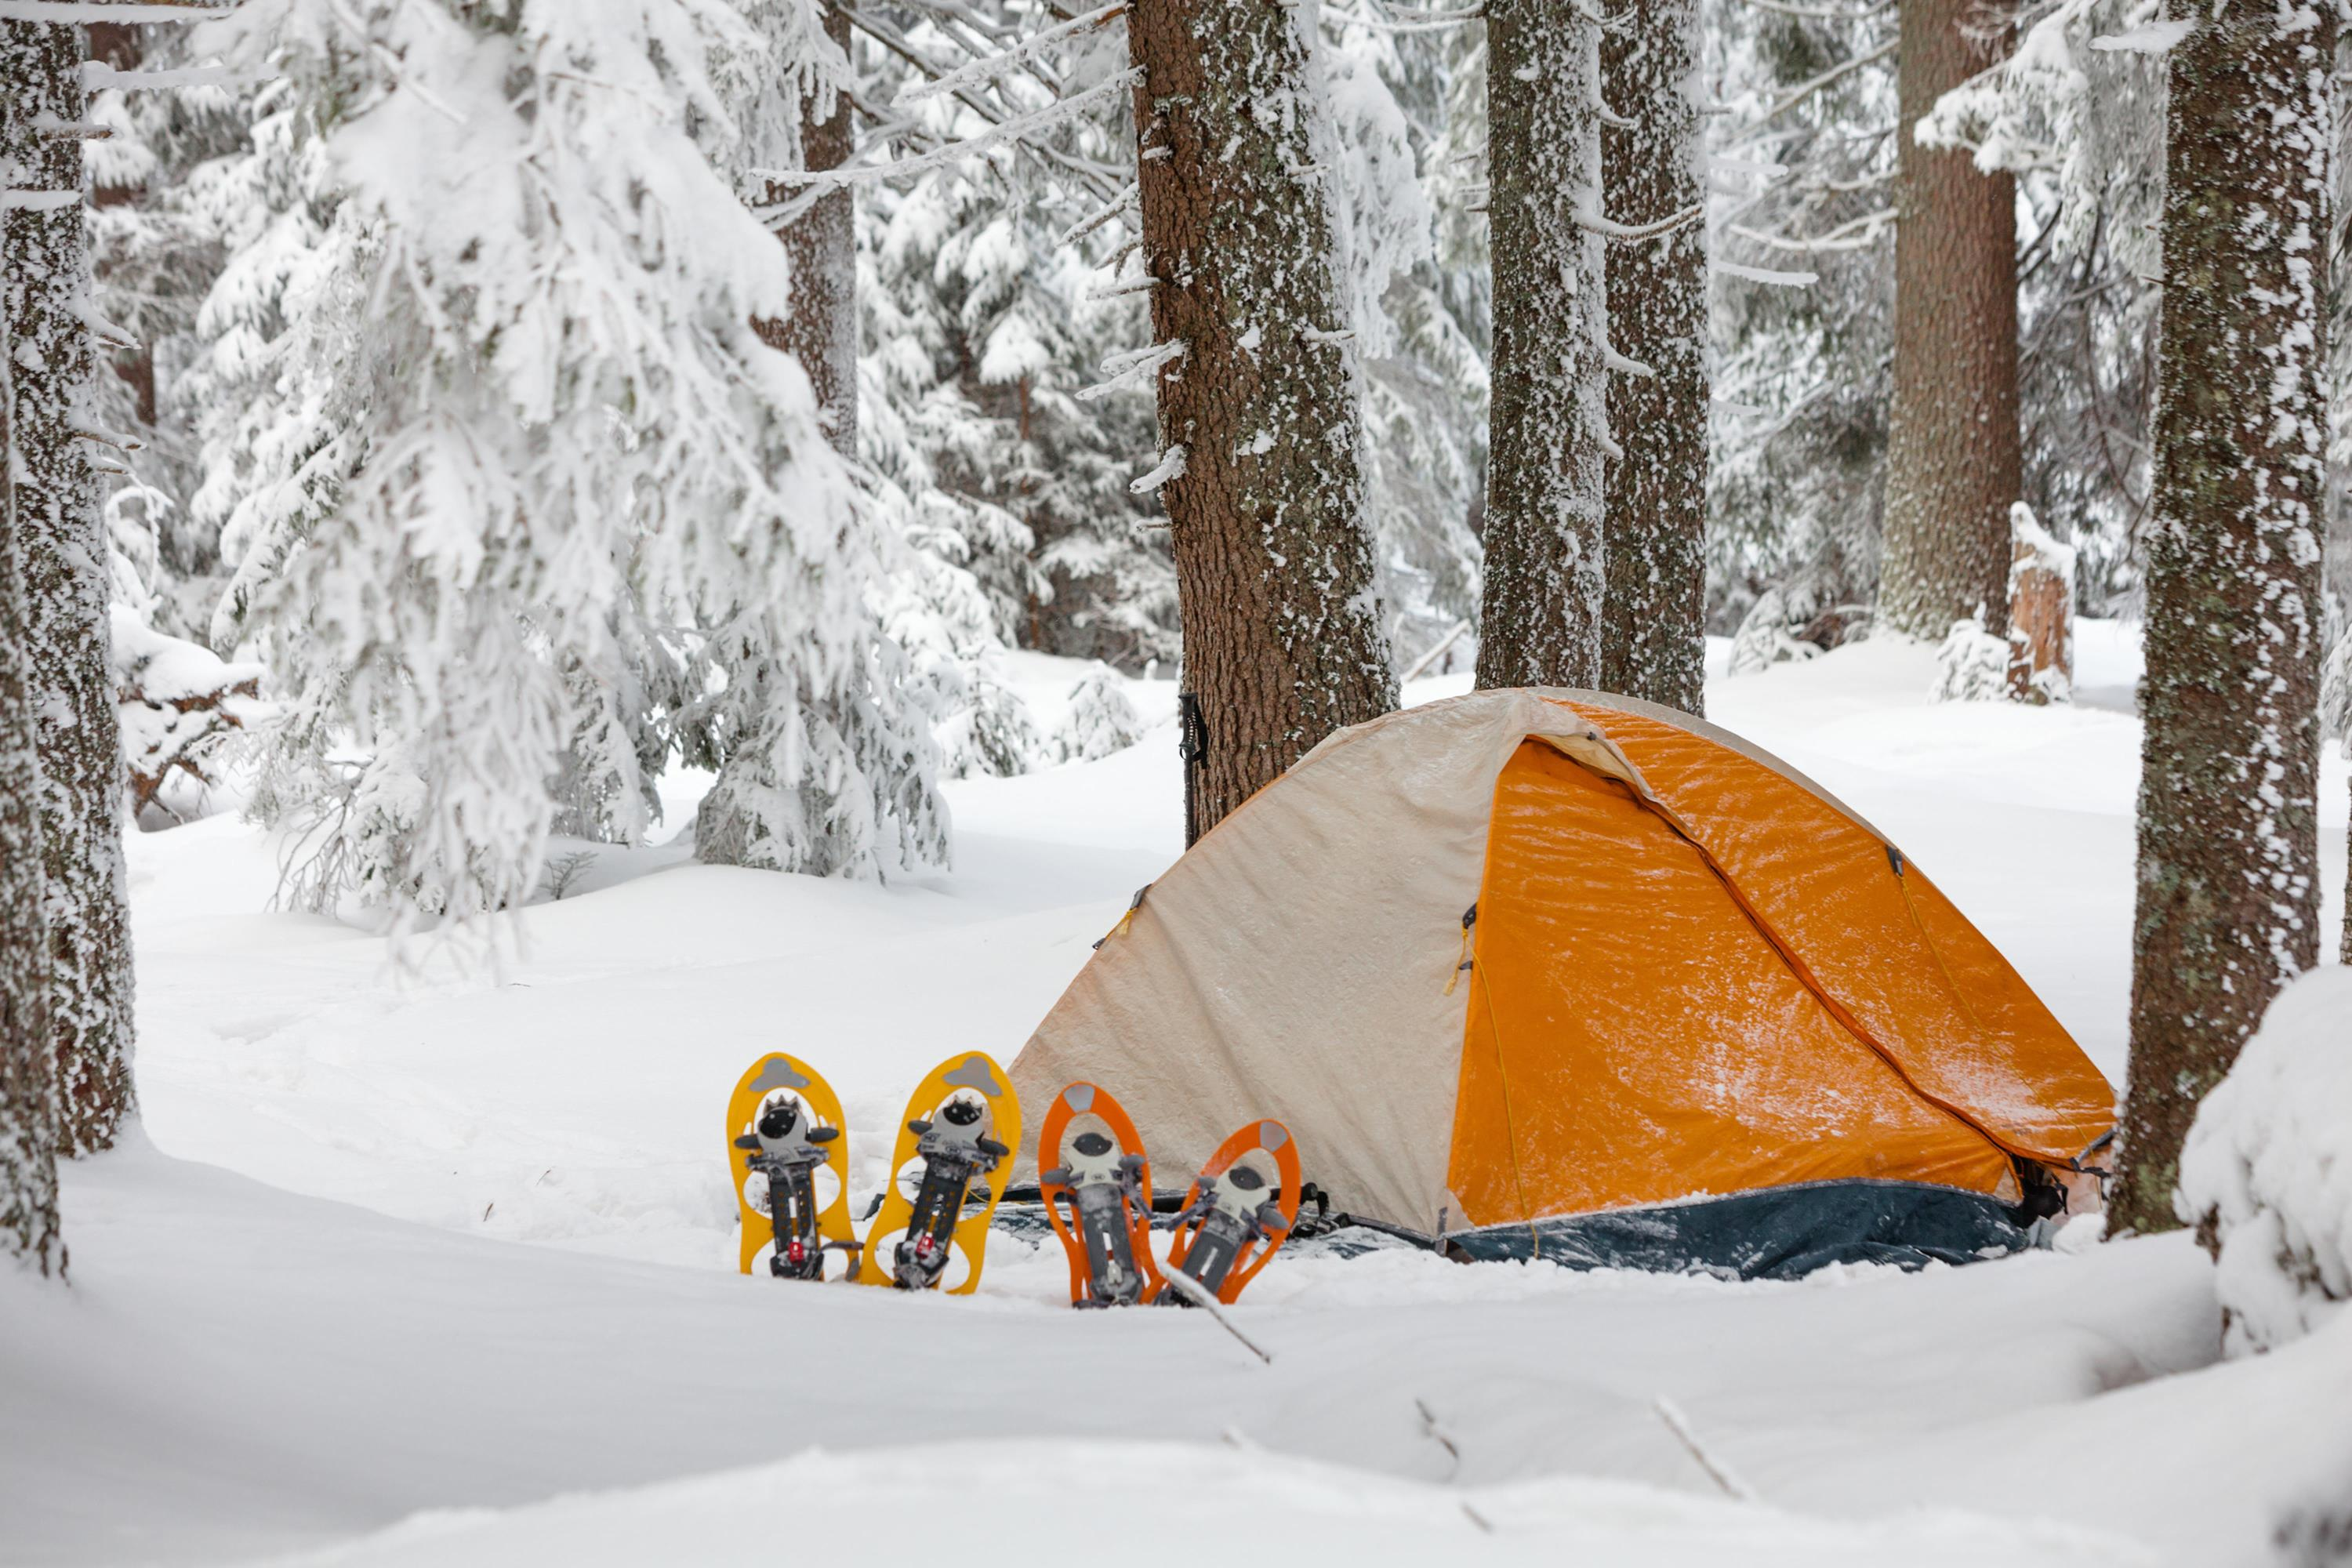 Camping ouvert a l annee